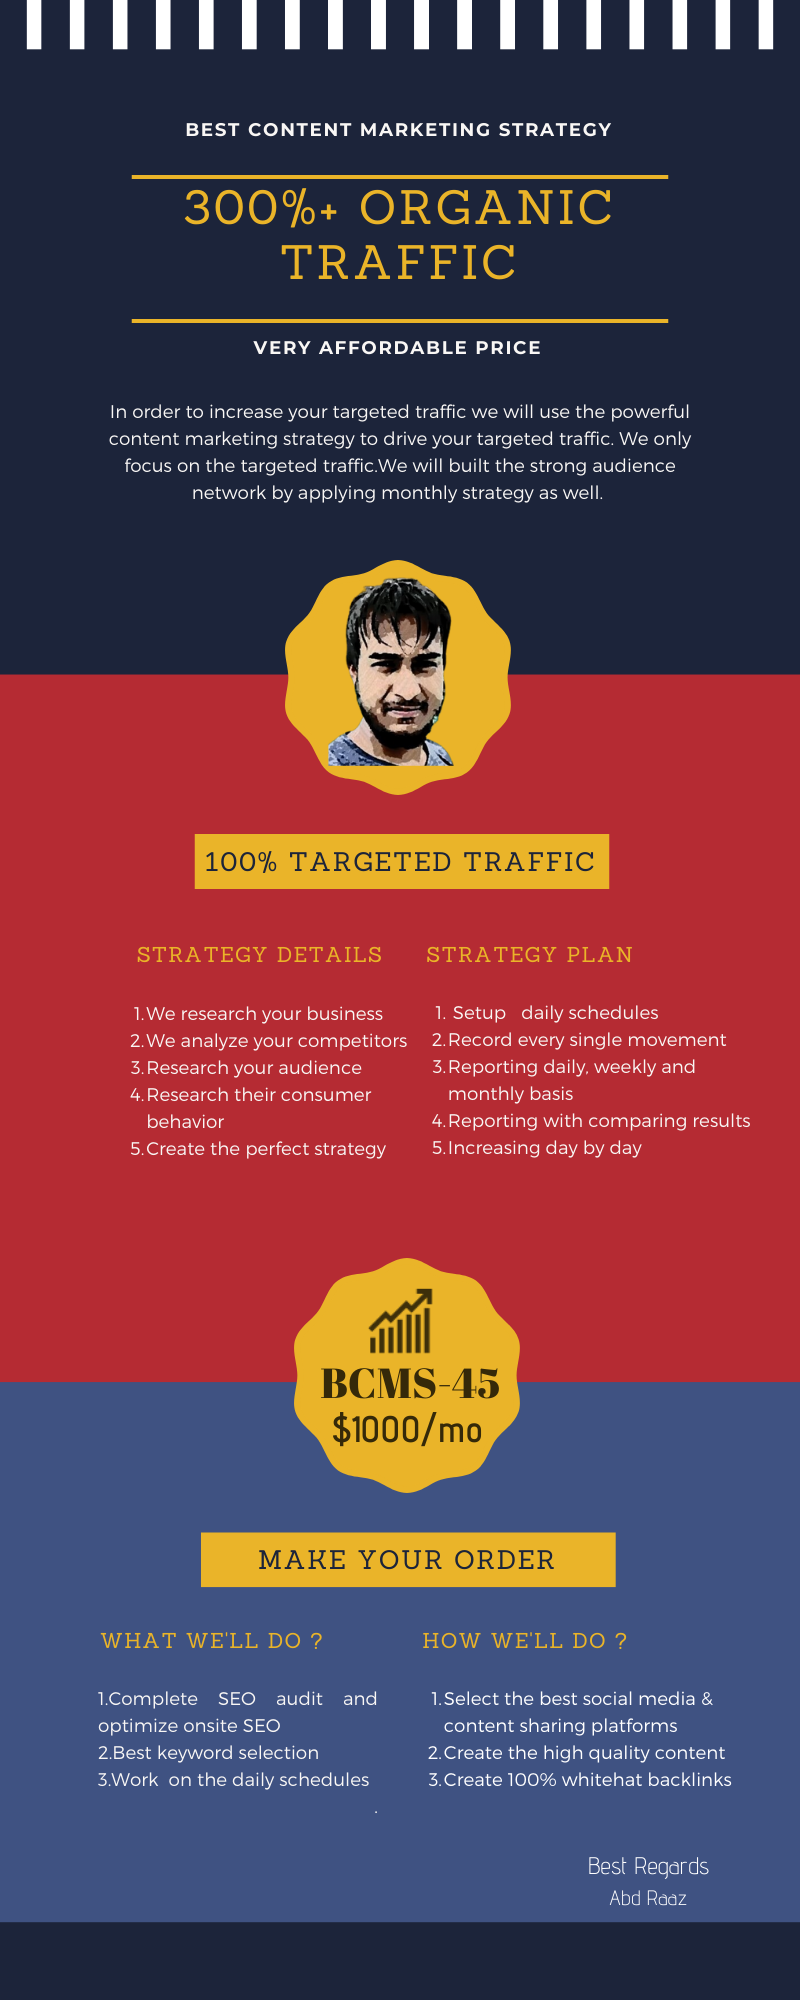 Best Content Marketing Strategy [BCMS-45]